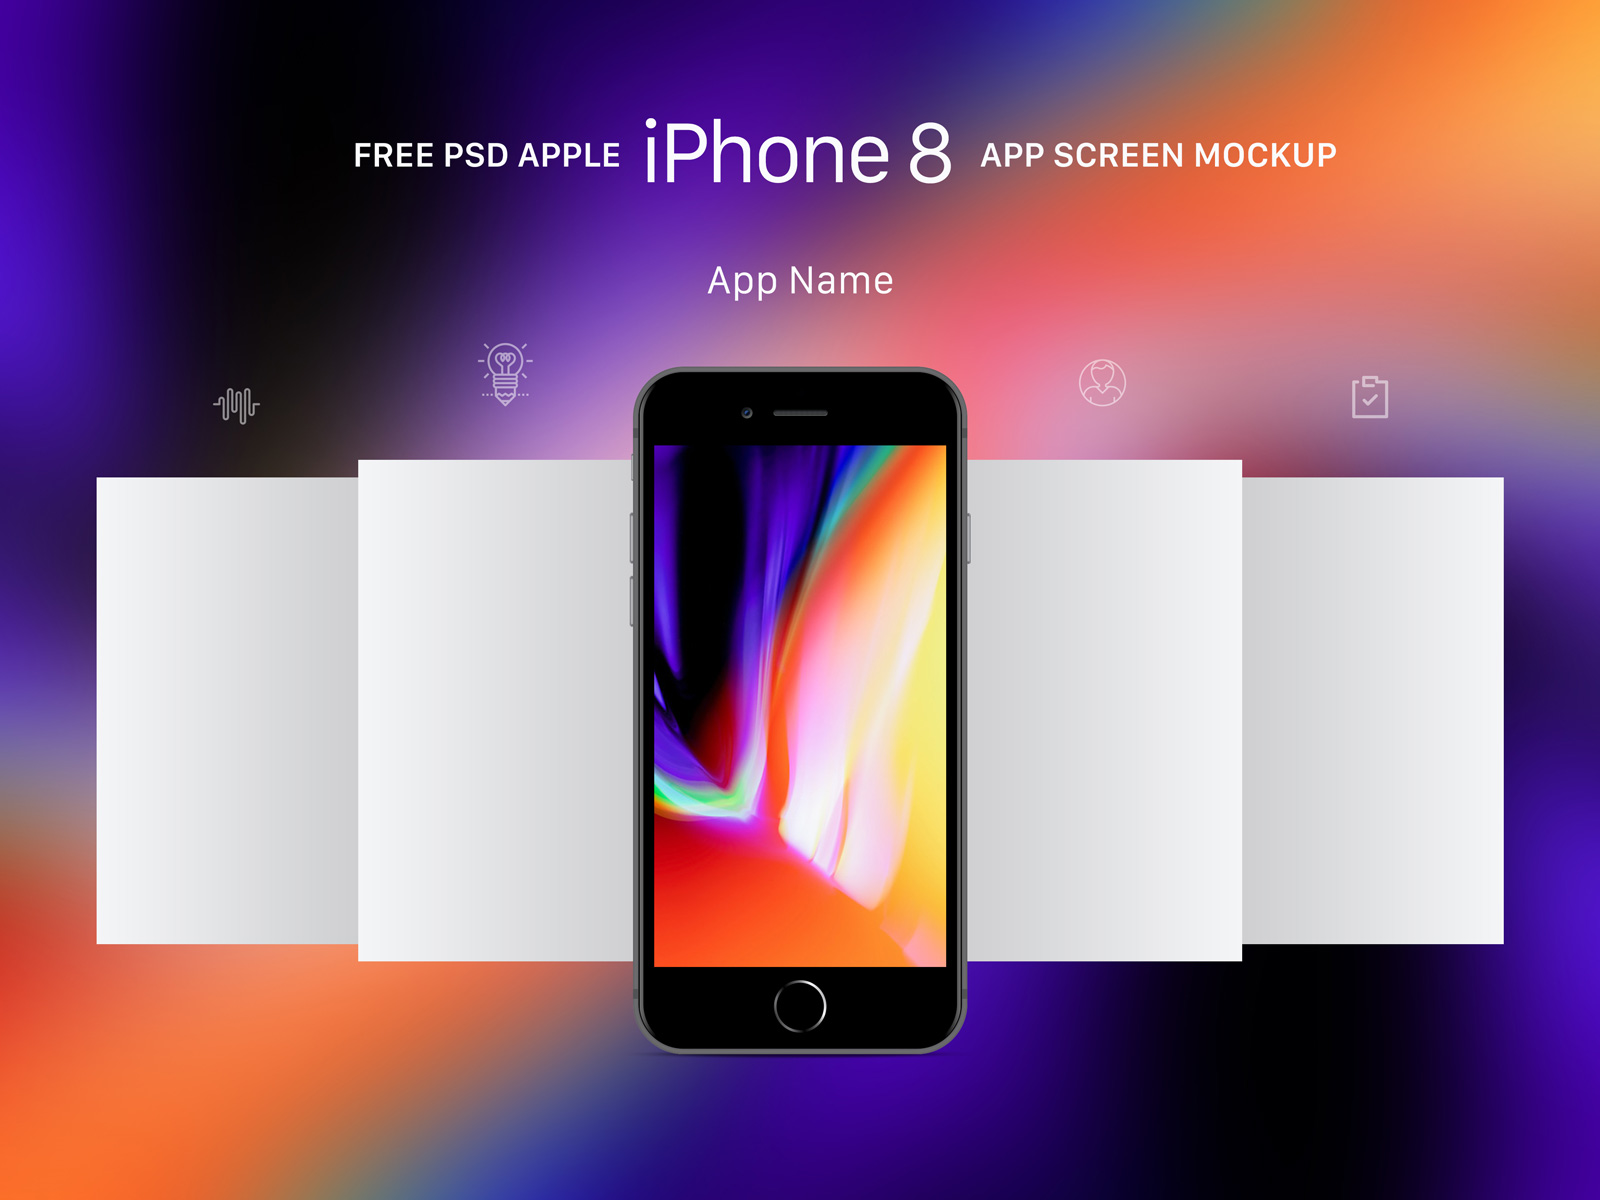 Free-Apple-Space-Gray-iPhone-8-App-Screen-Mockup-PSD